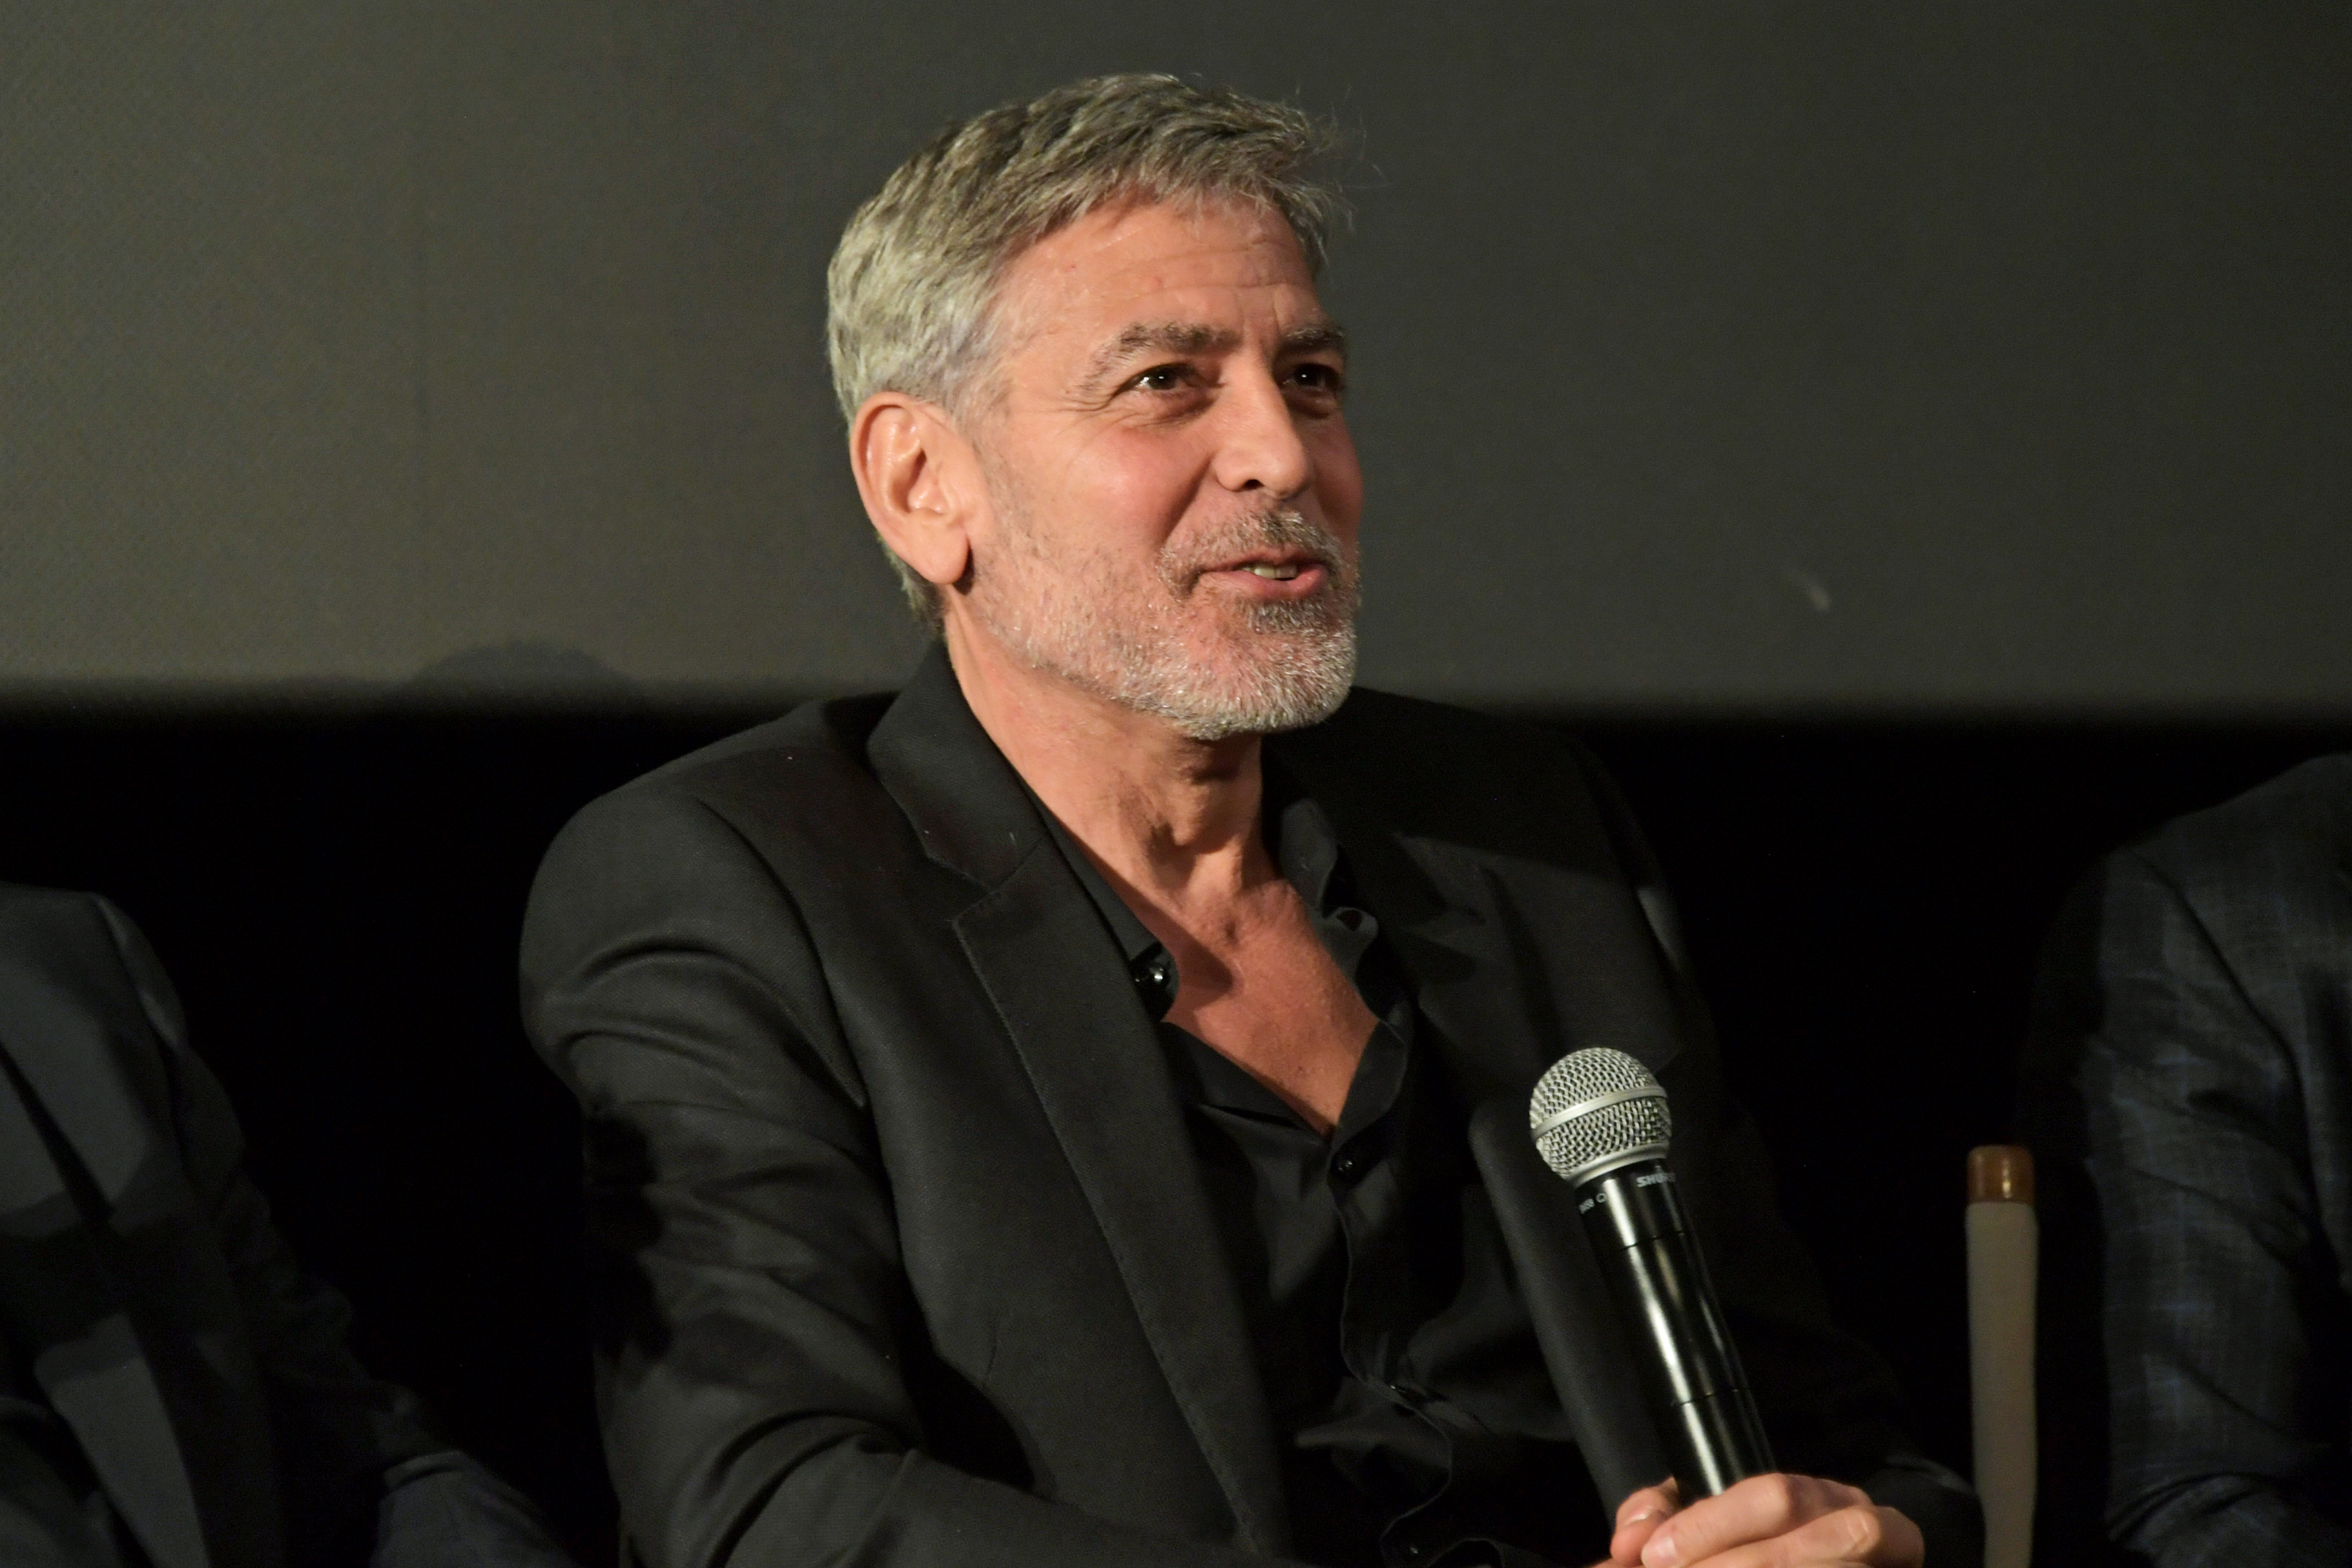 George Clooney producing docuseries on Ohio State University sex abuse scandal